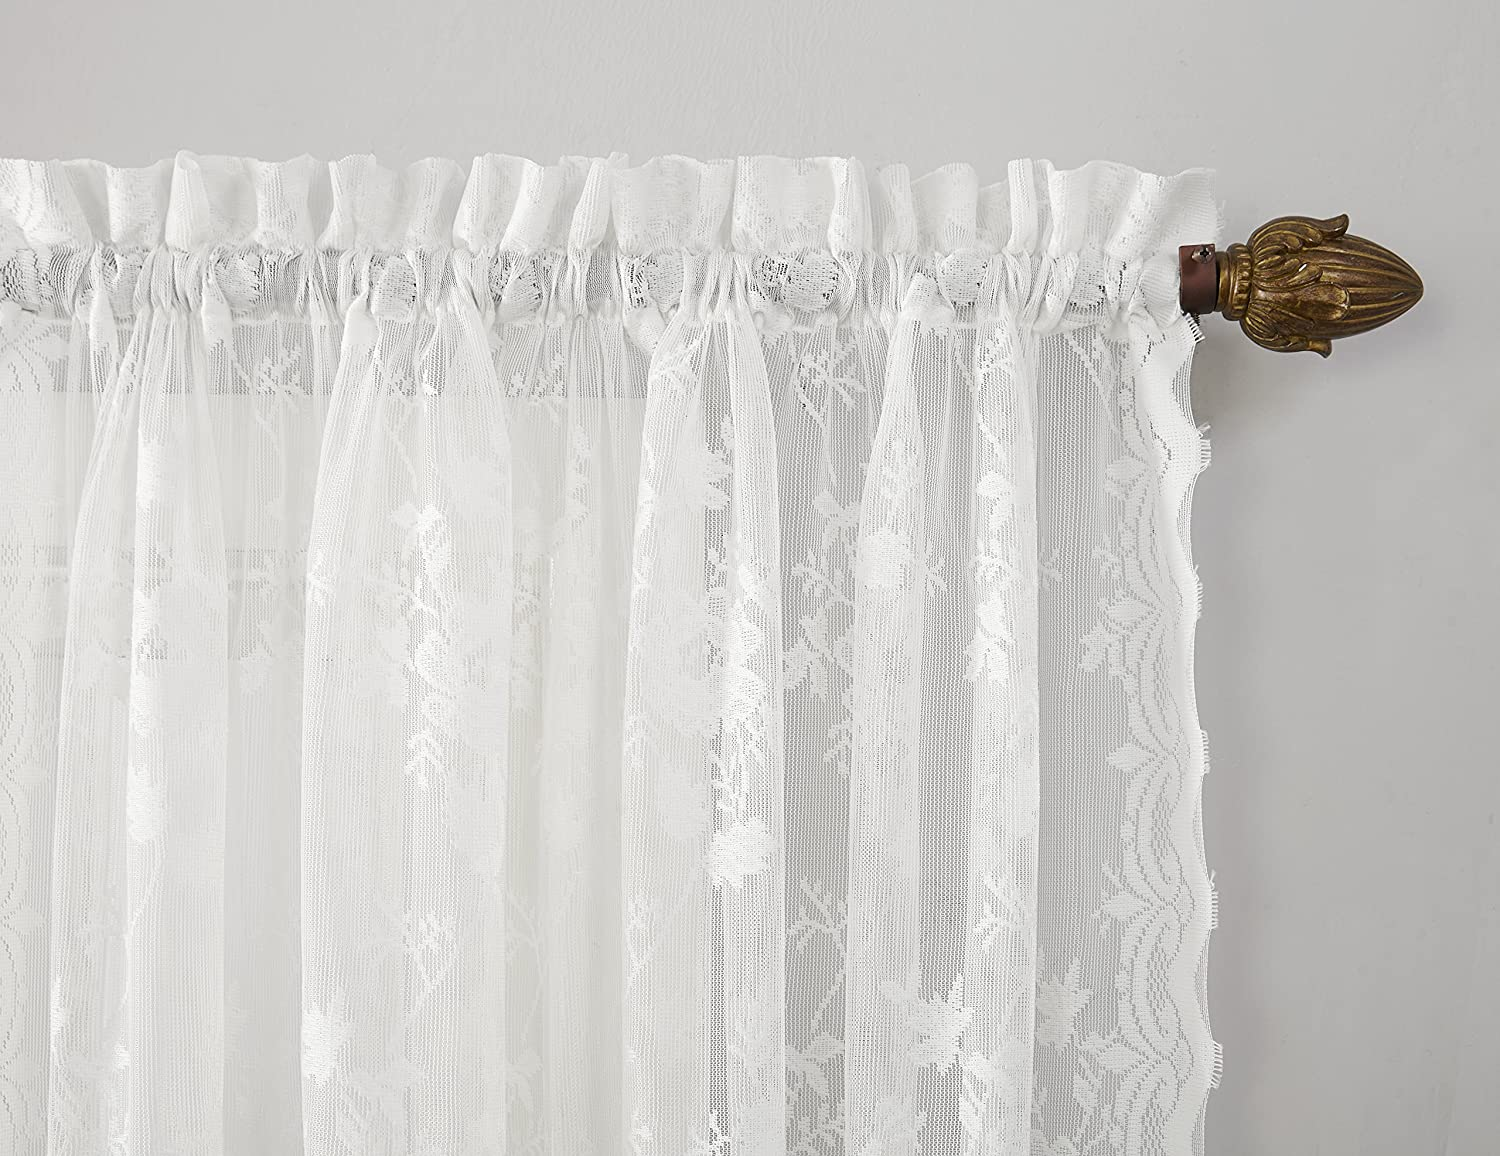 Dove Gray No 918 Alison Floral Lace Sheer Rod Pocket Curtain Panel 58 x 63